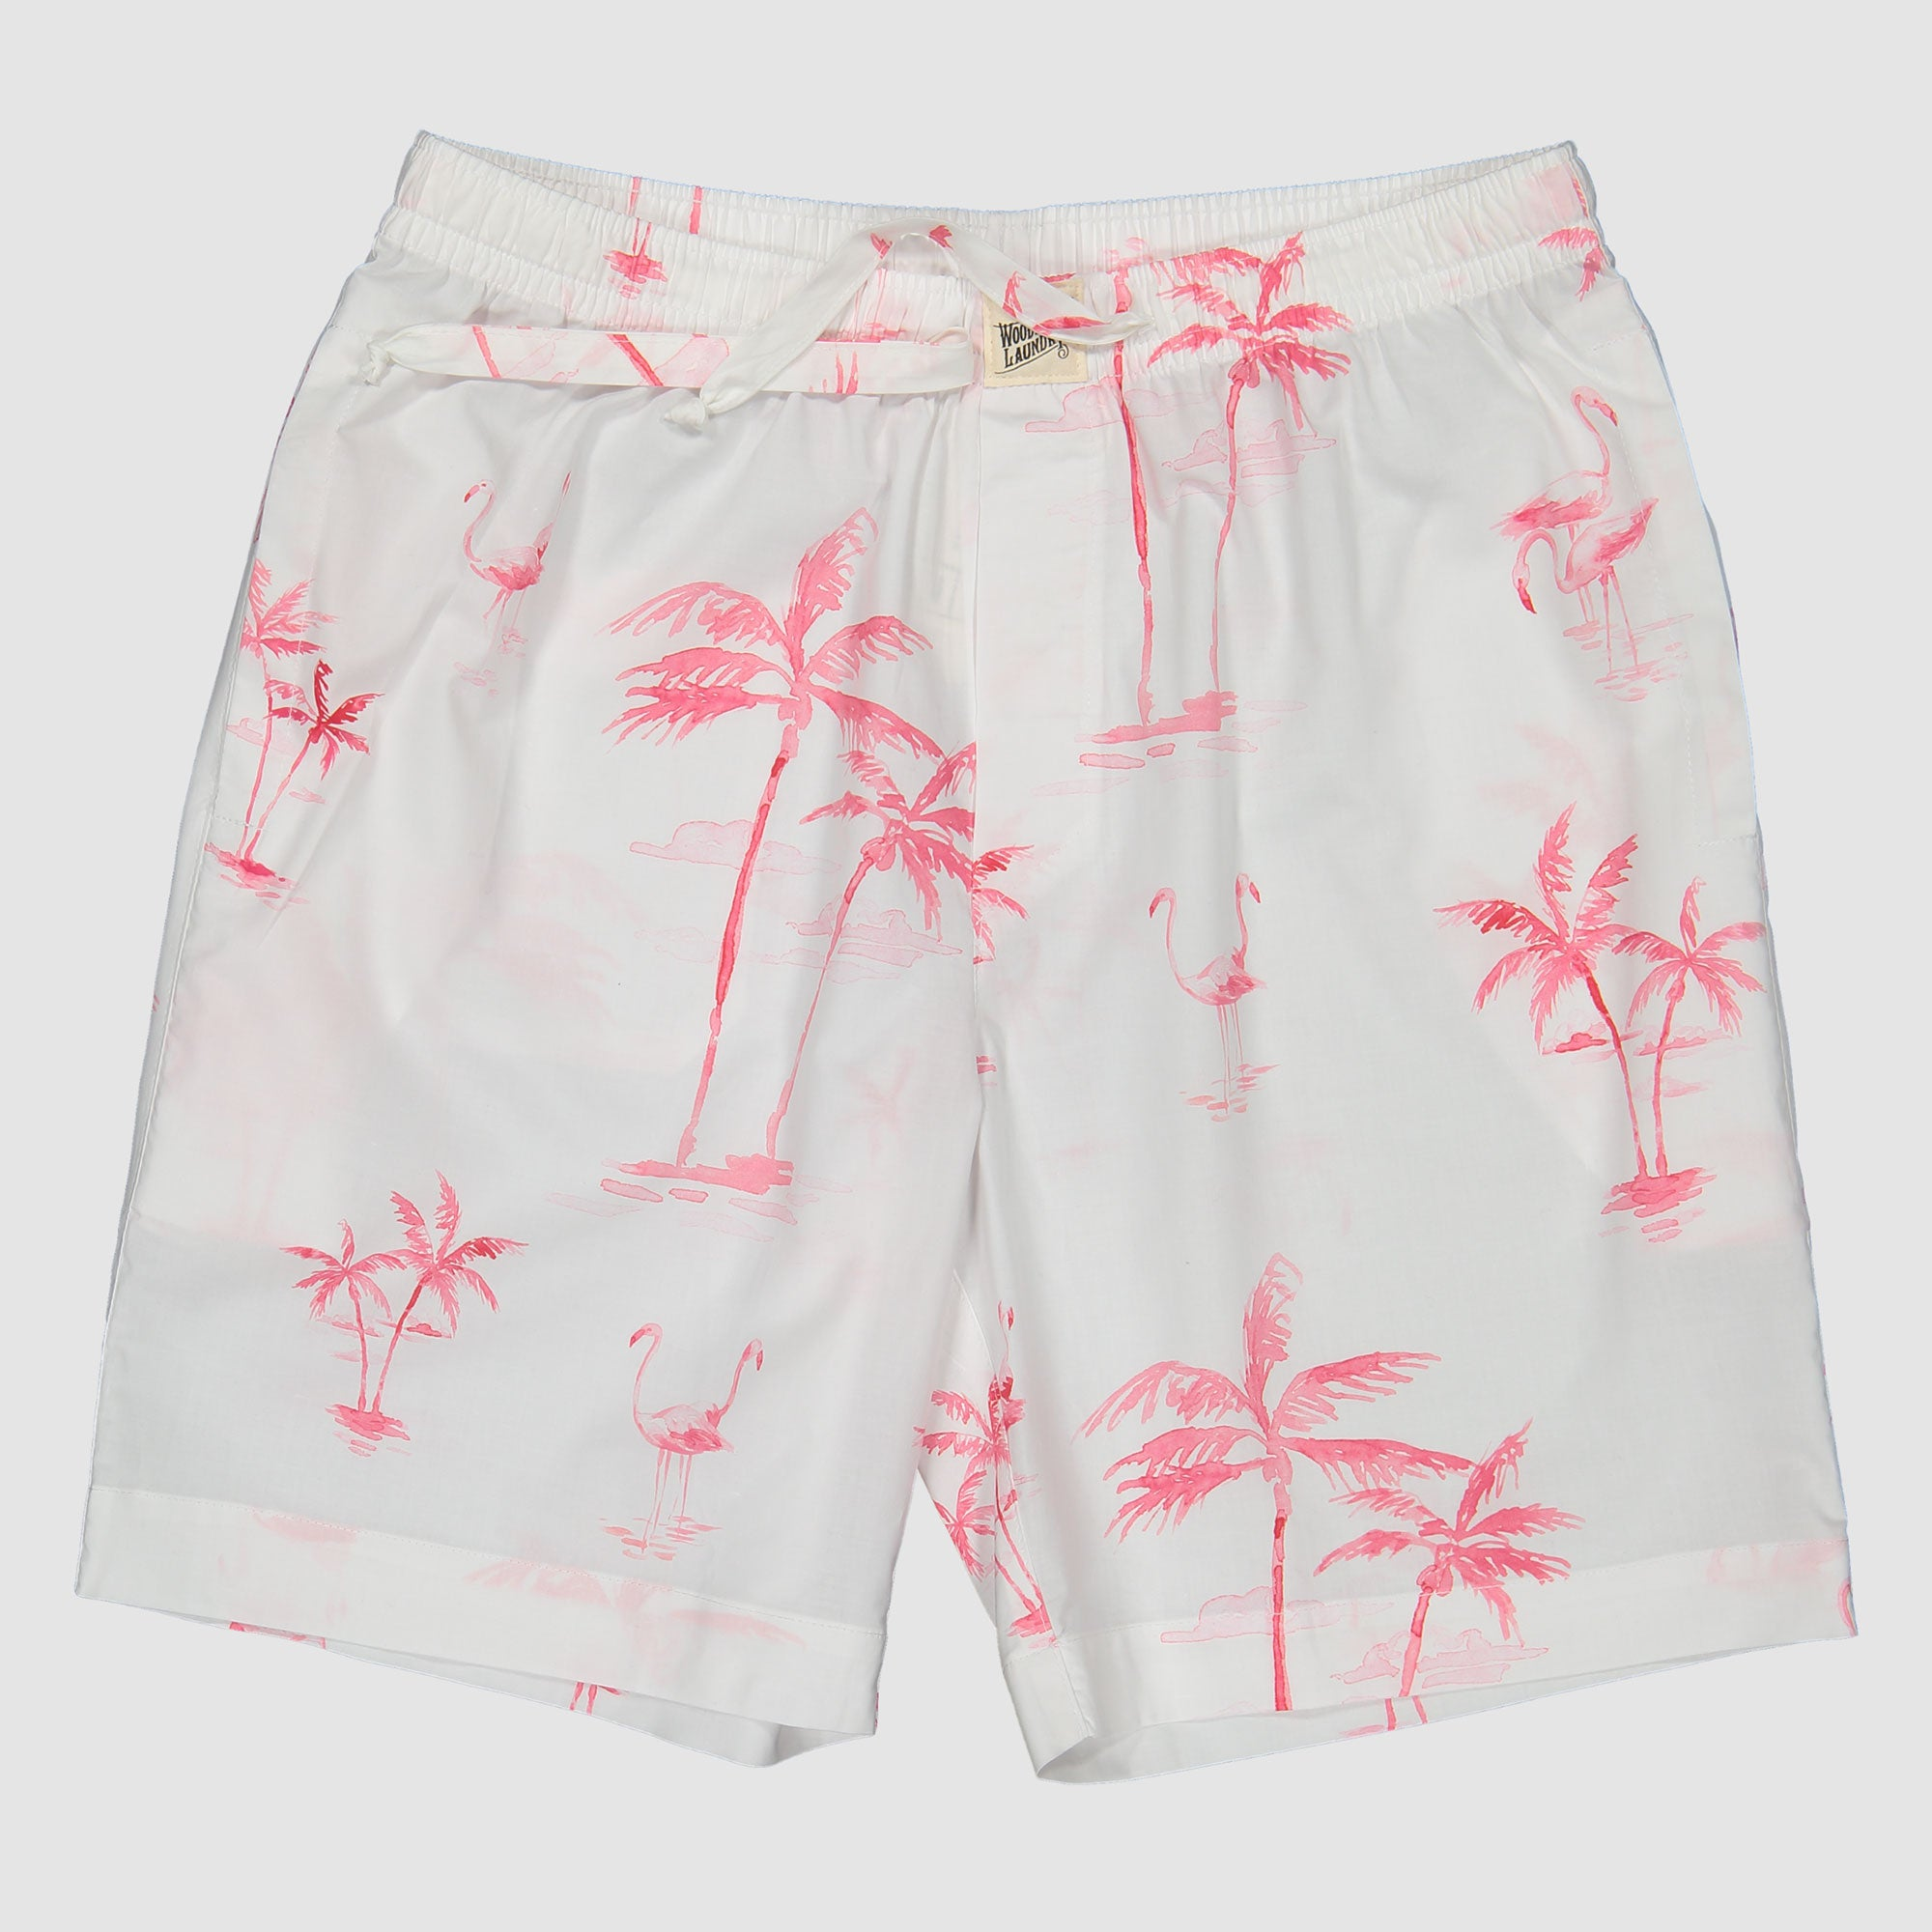 Mens Lounge Shorts Pink Palm - Woodstock Laundry